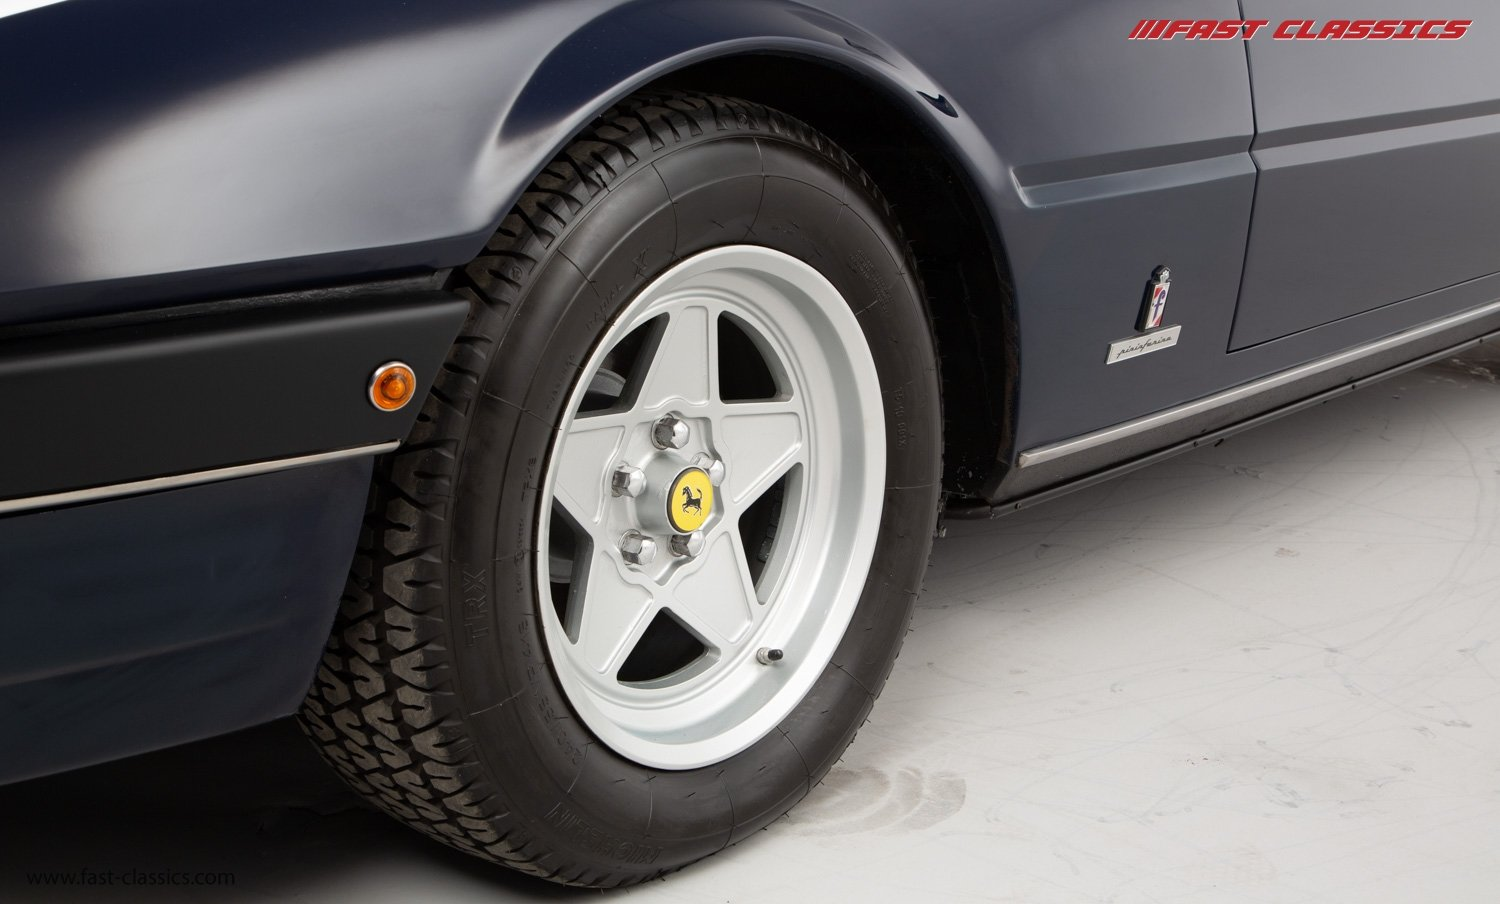 1980 FERRARI 400I // BLU POZZI // UK RHD // 1 OF 180 UK SUPPLIED For Sale (picture 18 of 21)